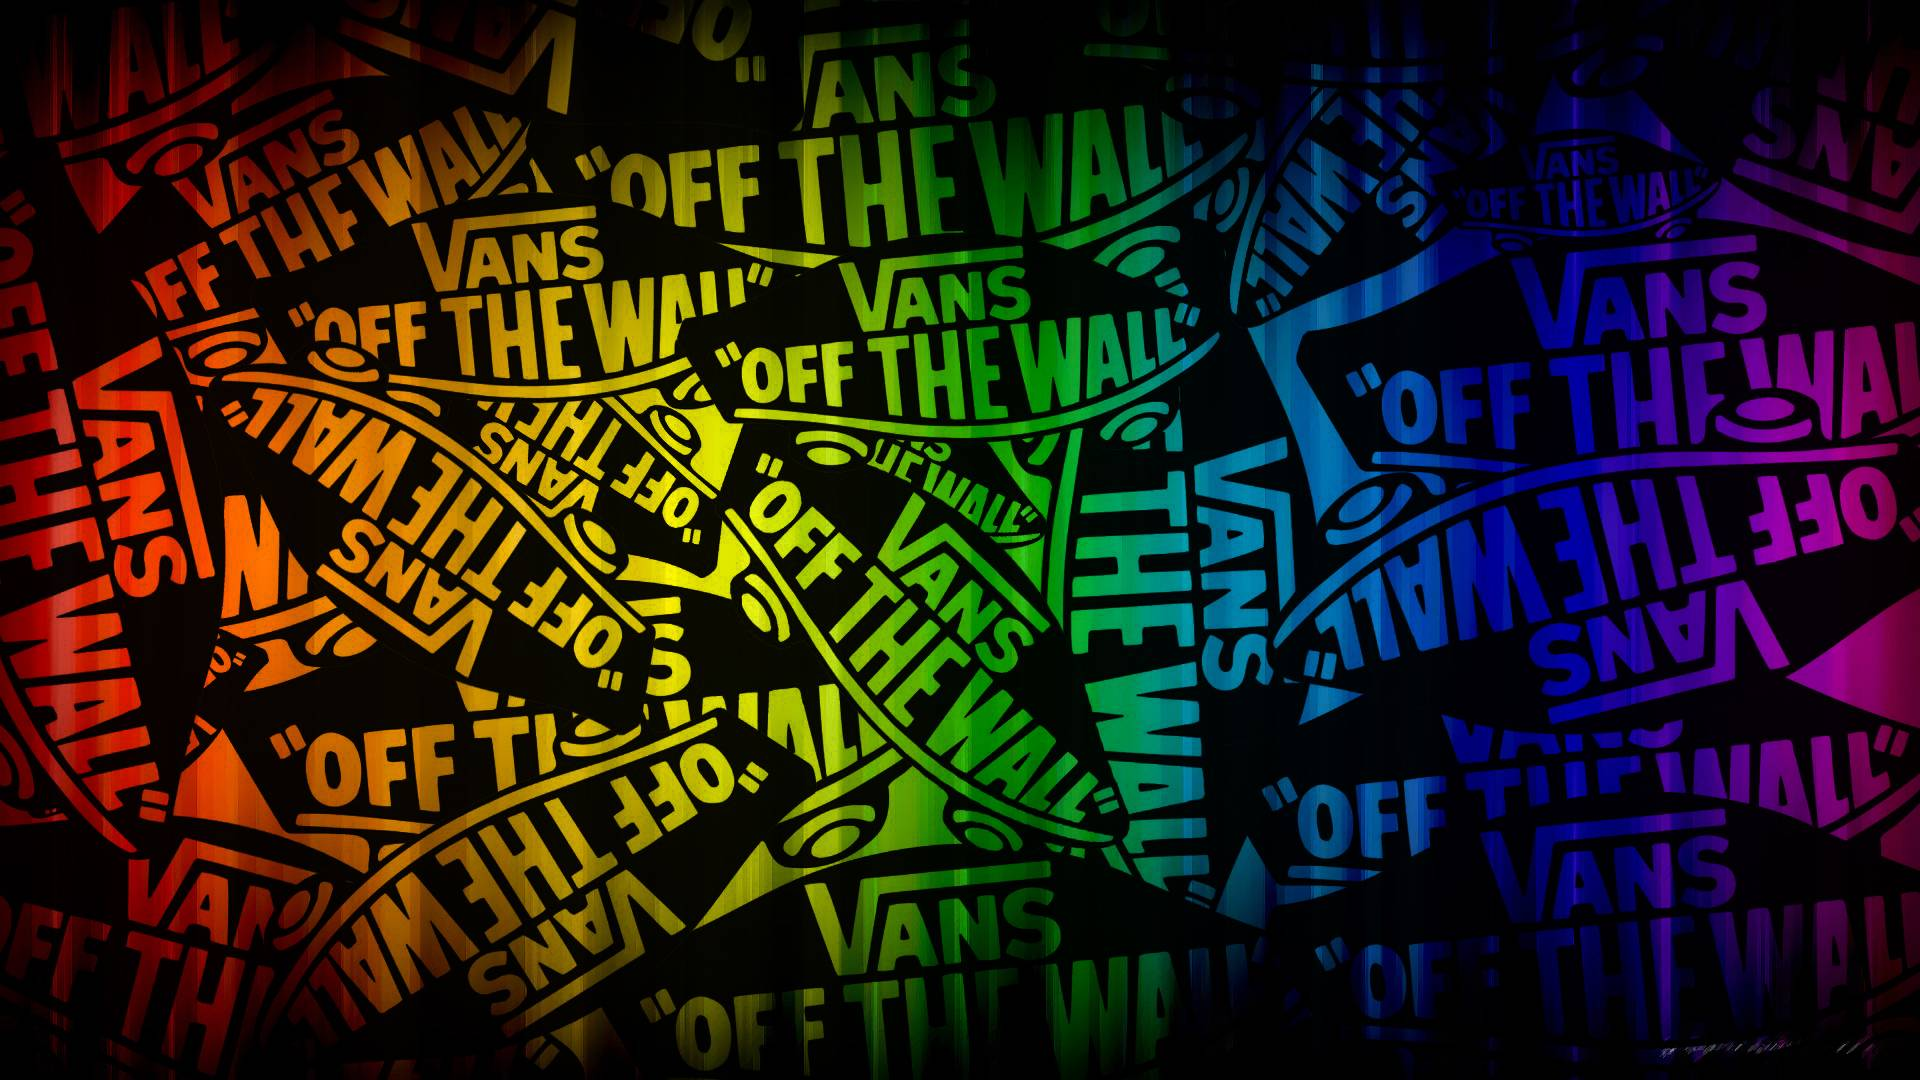 Vans off the wall wallpapers wallpaper cave Wallpapers for the wall